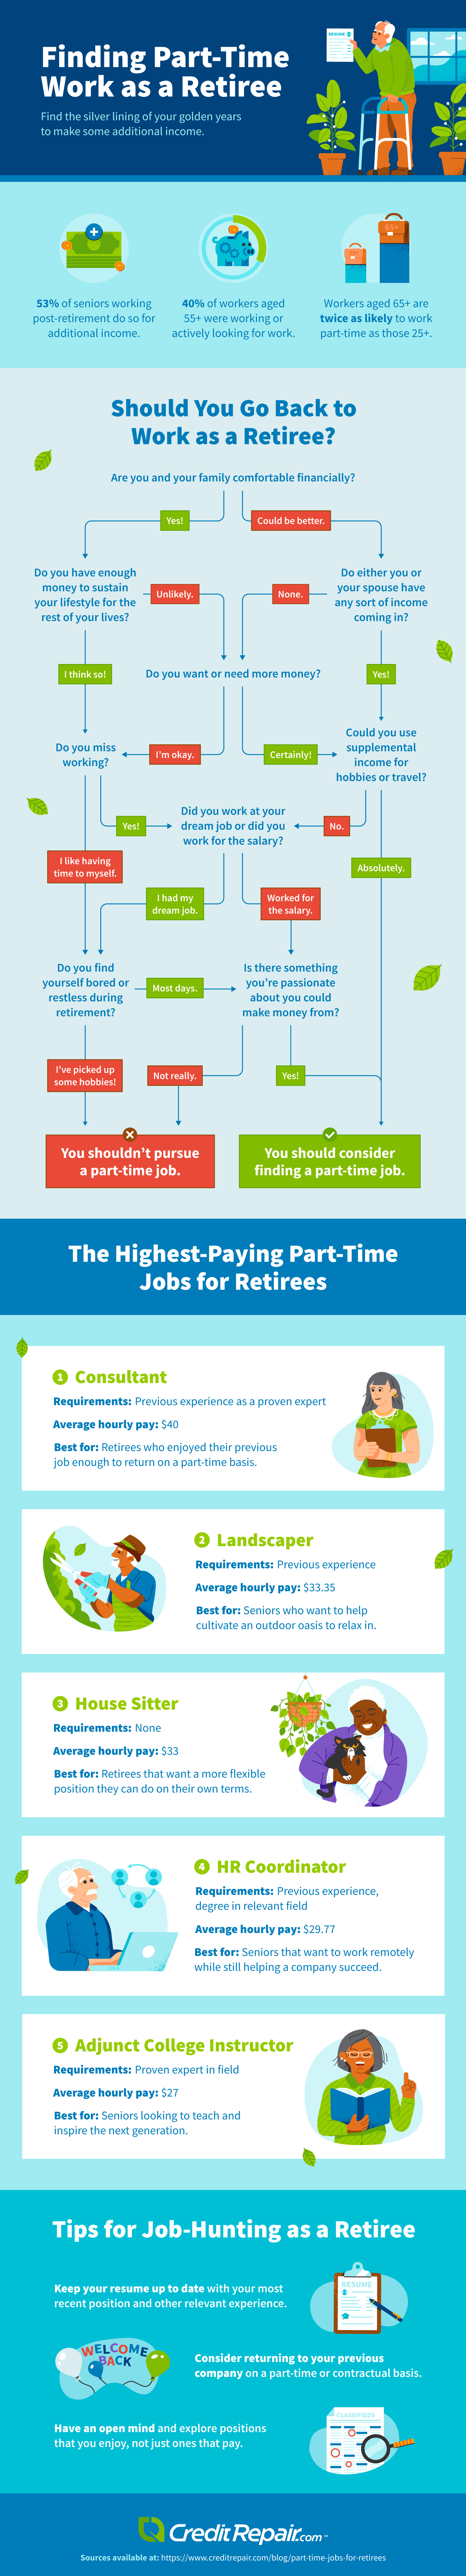 part-time-jobs-for-retirees